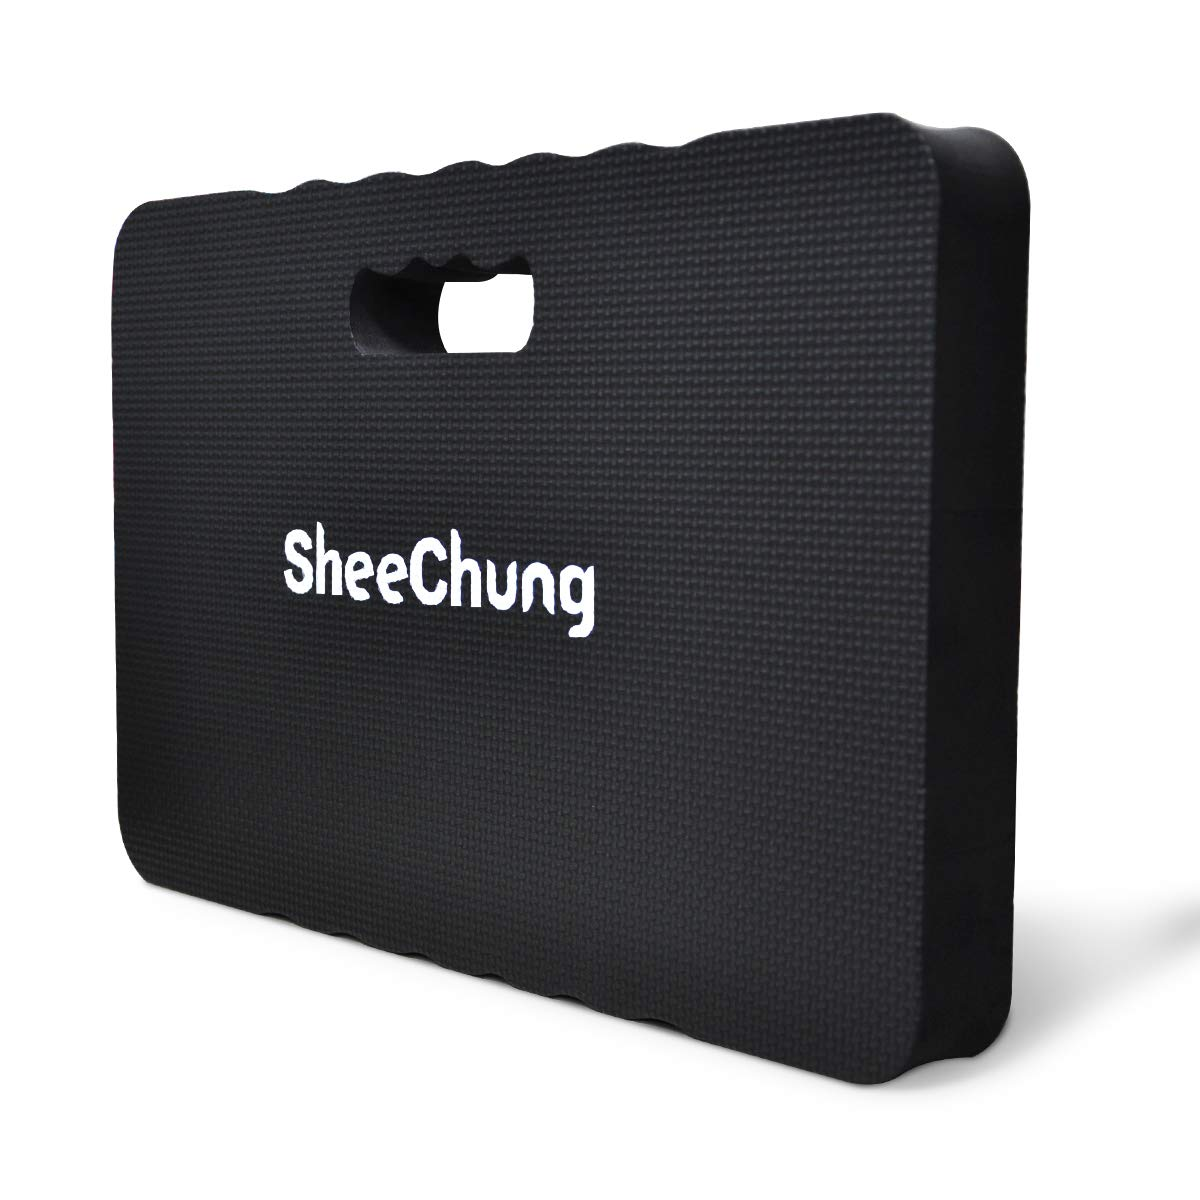 "SheeChung Extra Thick Kneeling Mat - Foam Garden Kneeling Pad Gardening,Mechanics Knee Pads Work,Bath Kneeler Baby Bath, Kneeling Pad Exercise & Yoga,Extra Large(XL) 18x11, THICKEST 1-½"" (Black)"